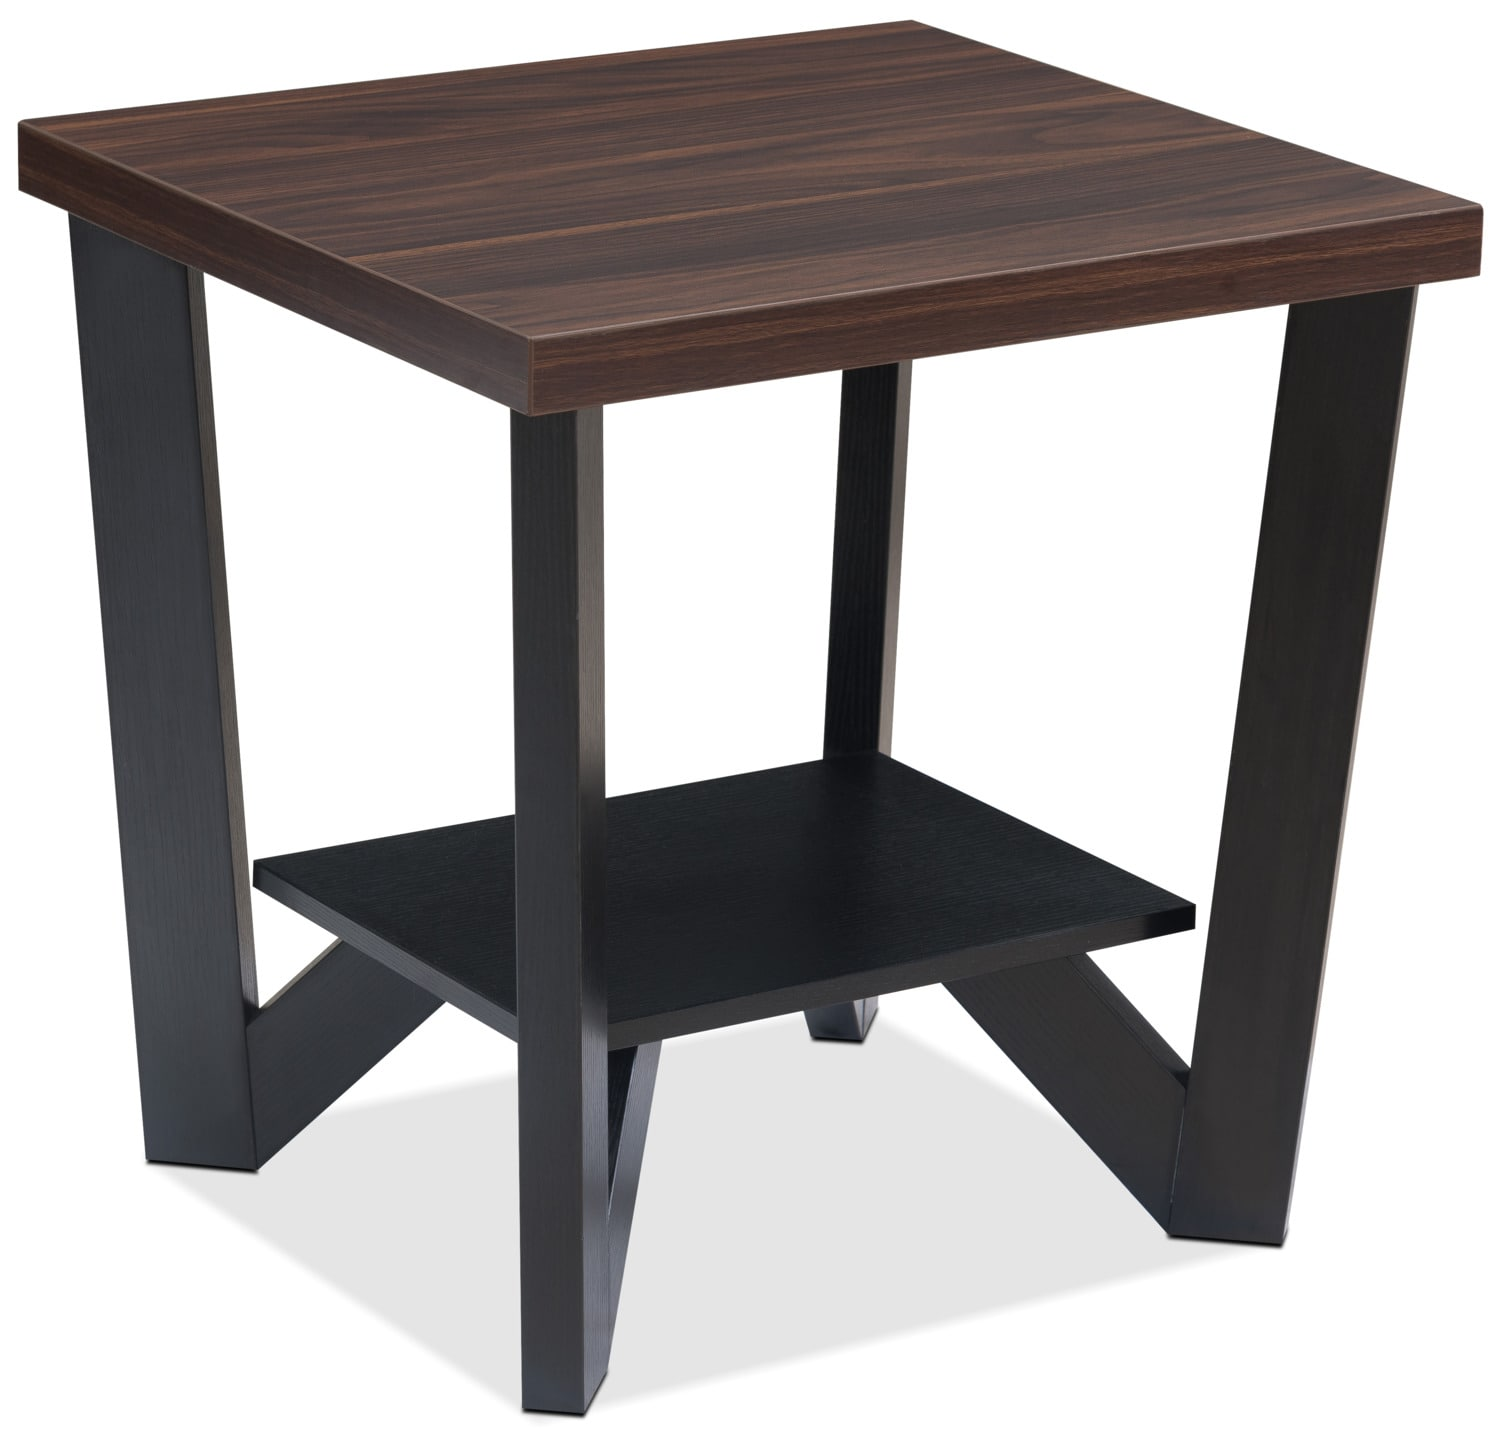 Arika 3 Piece Coffee And Two End Tables Package Black The Brick